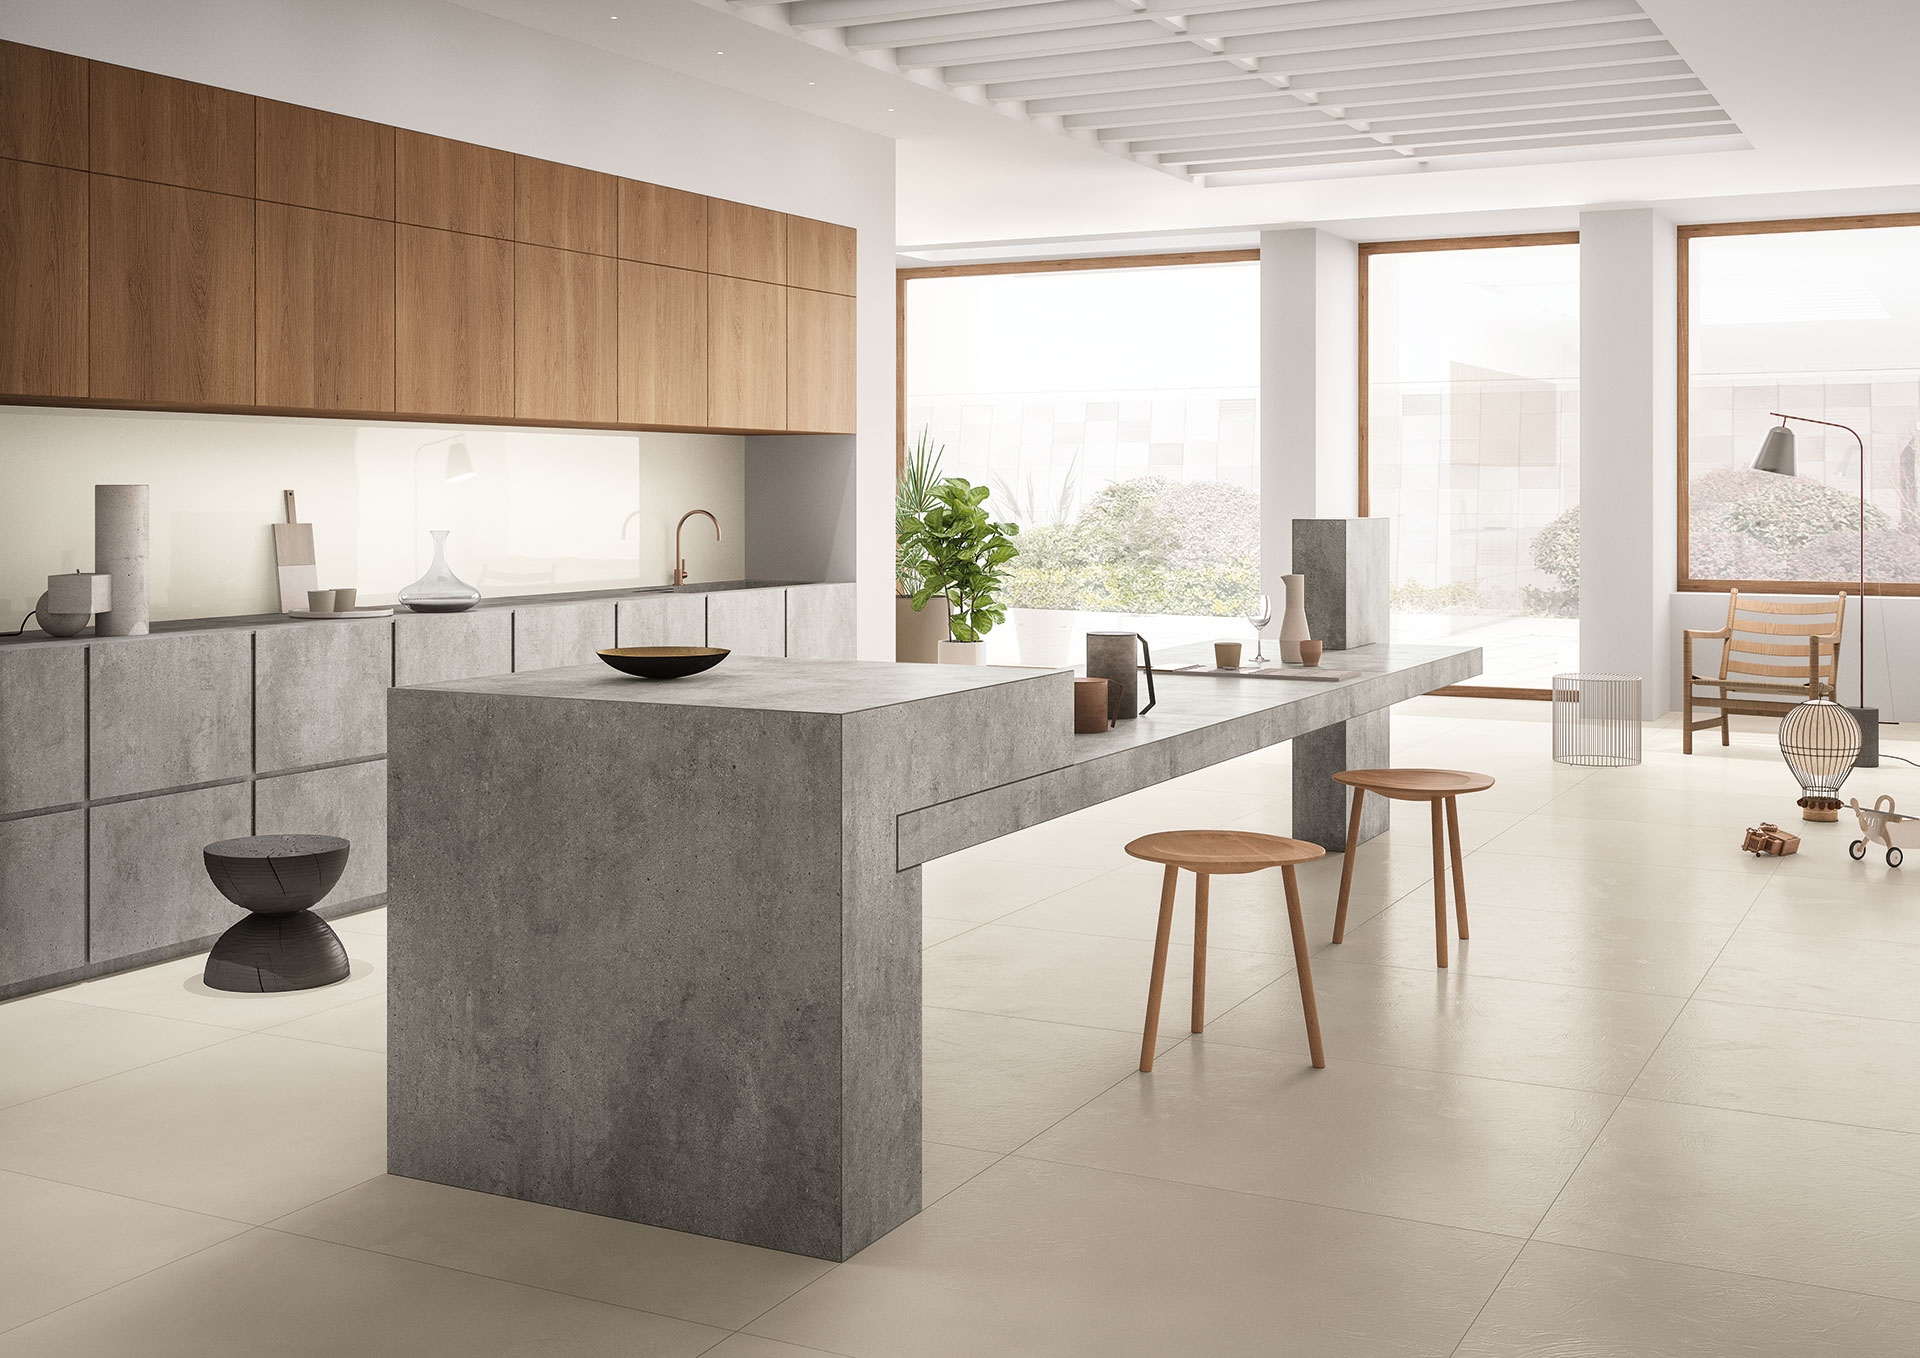 Piano Cucina Gres Opinioni sapienstone kitchen countertops: the benefits of the best